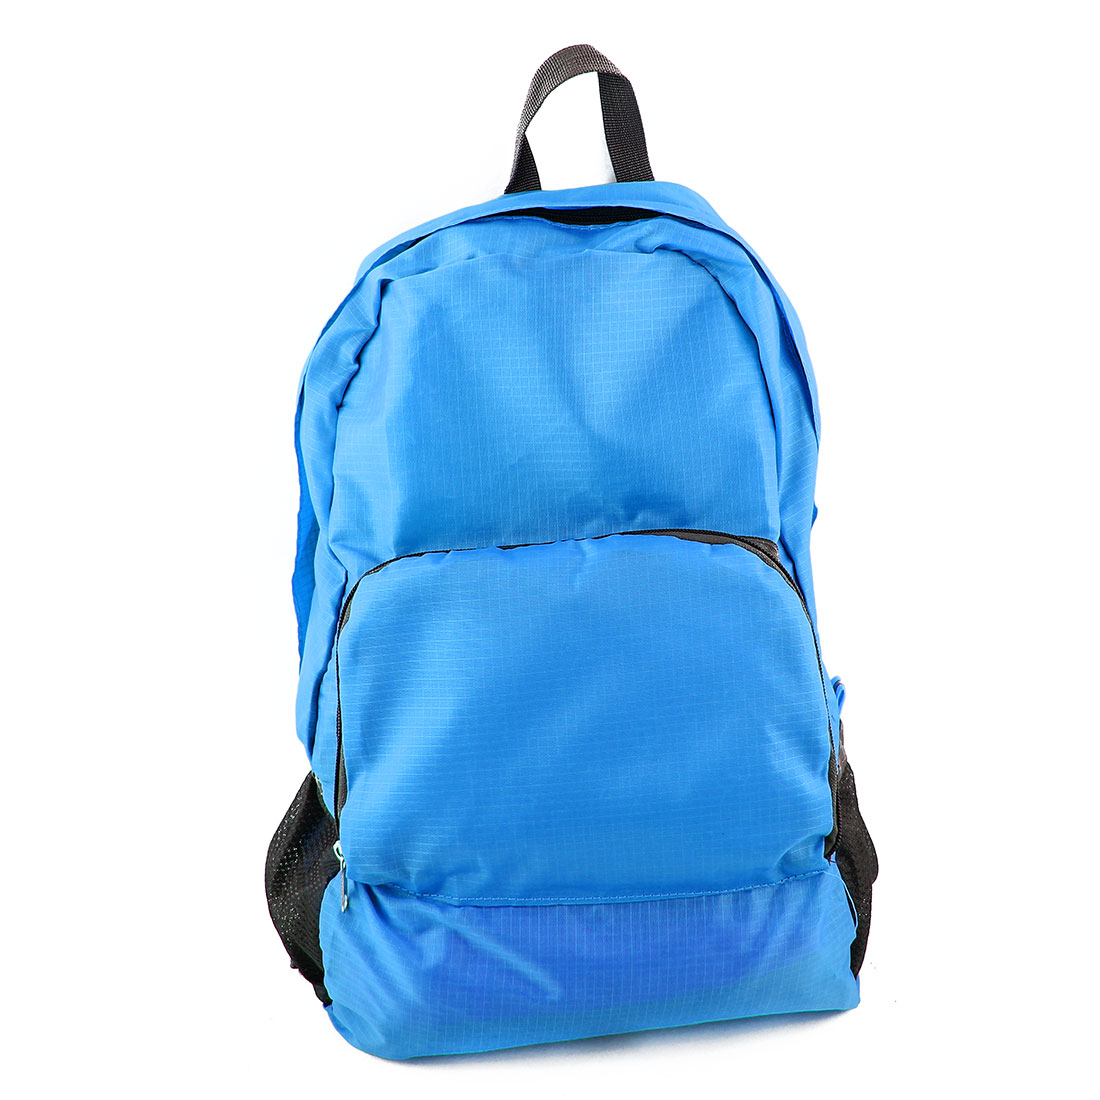 Lightweight Packable Pack Outdoor Travel Backpack Hiking Camping Daypack Sport Bag Blue 20L